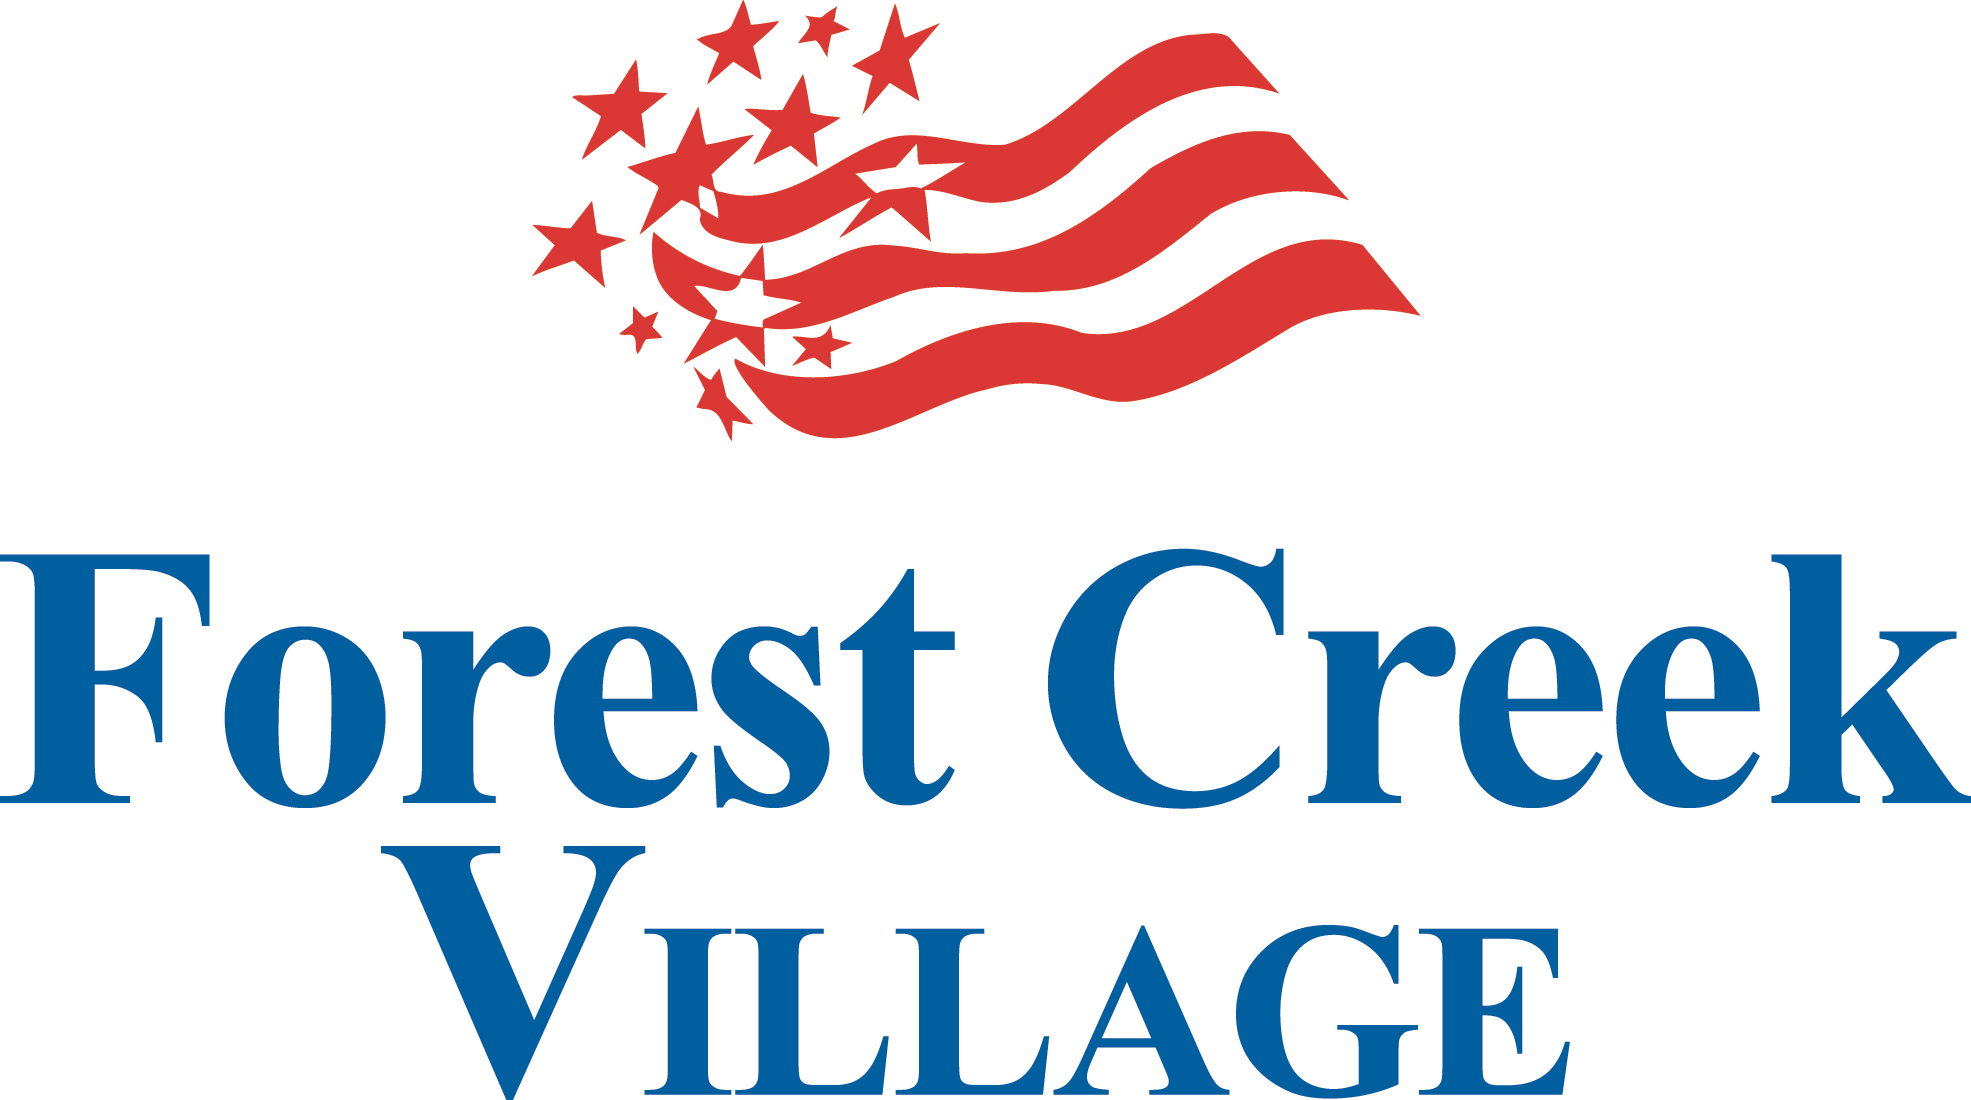 Forest Creek Village